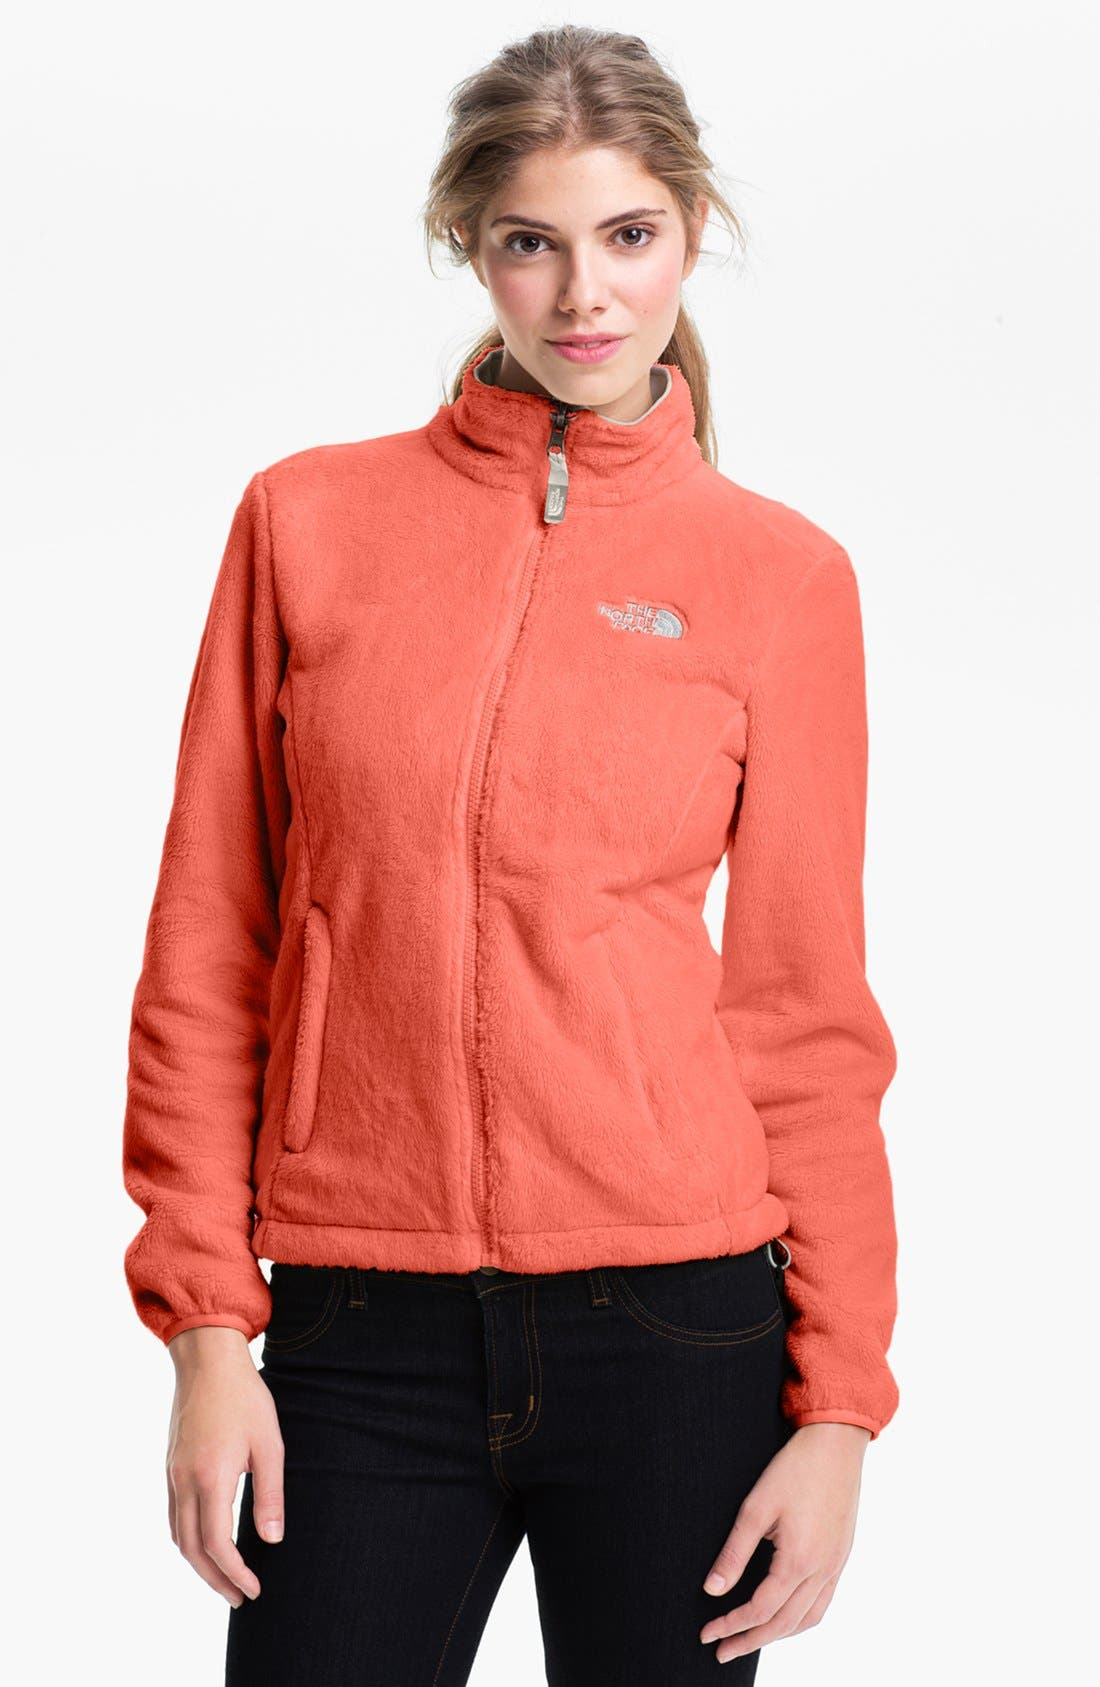 Alternate Image 1 Selected - The North Face 'Osito' Fleece Jacket